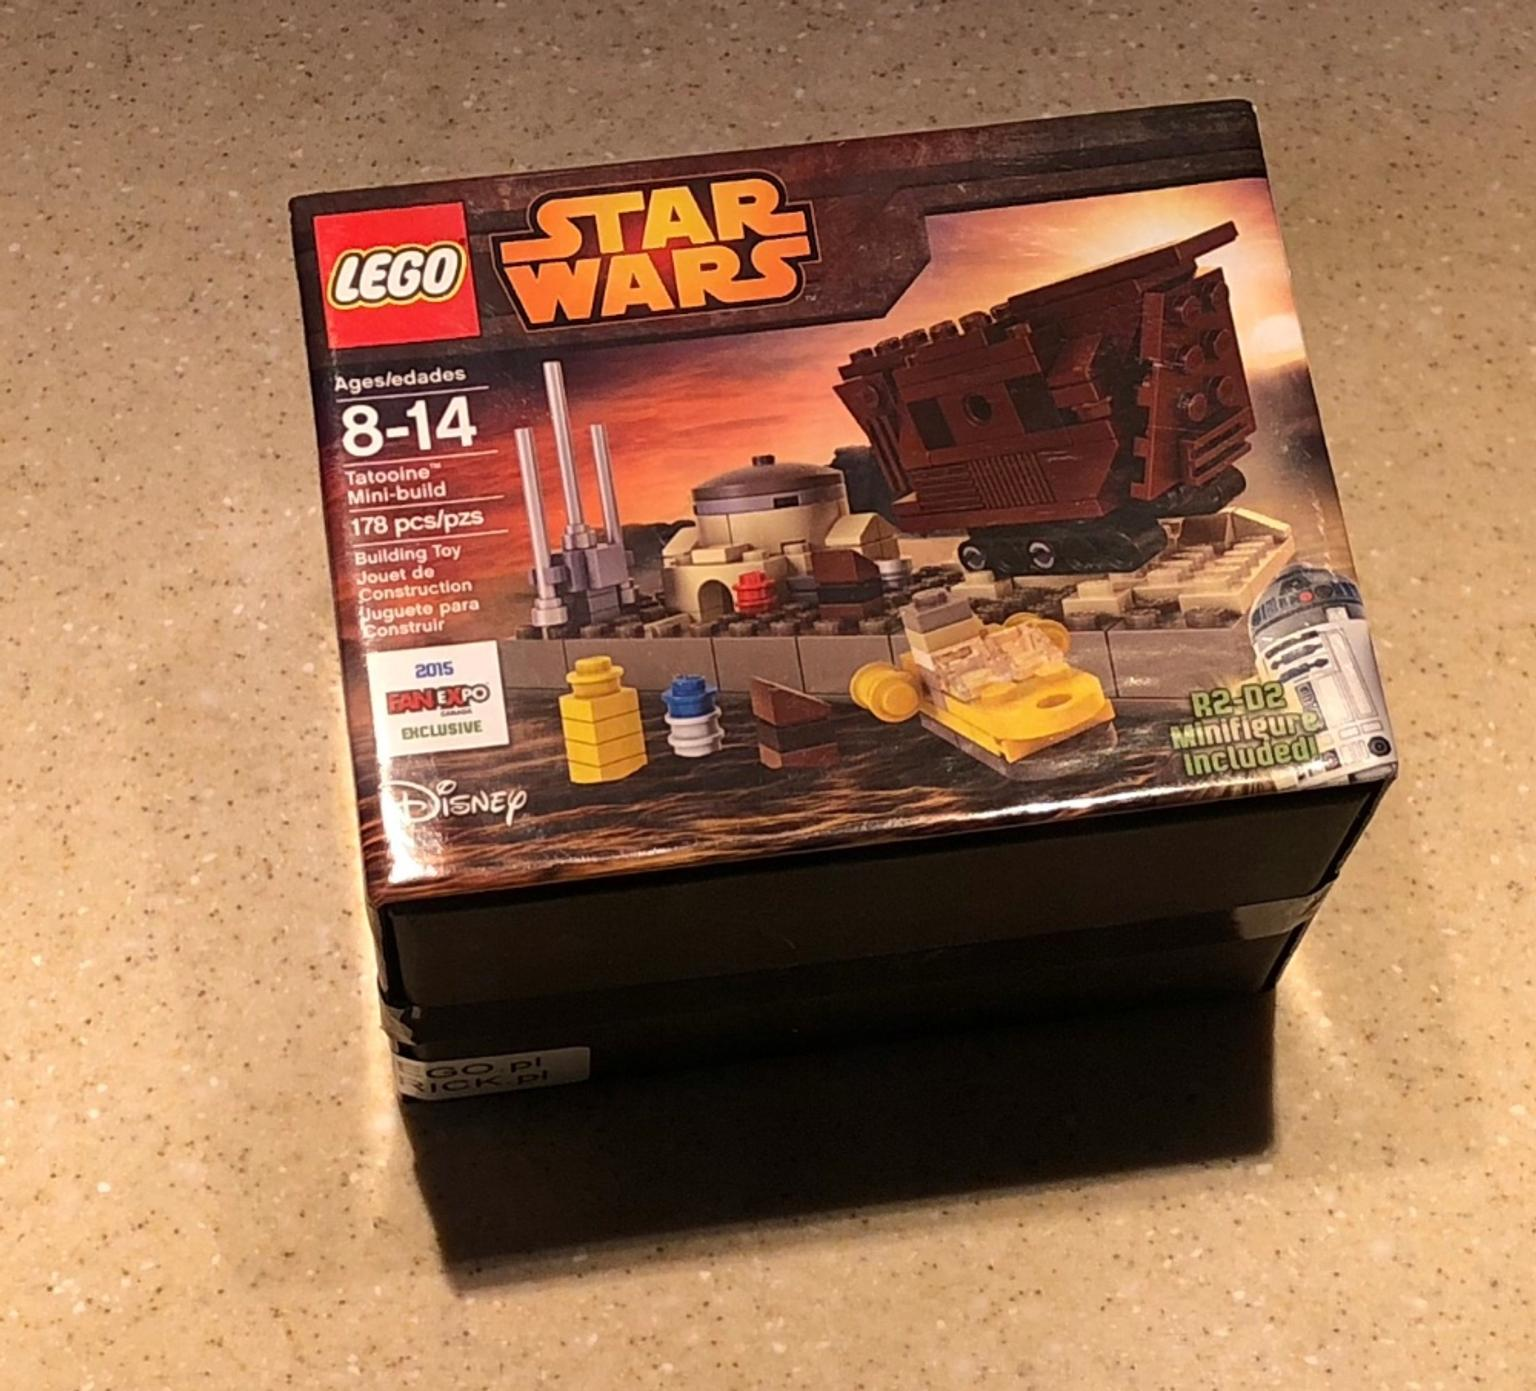 LEGO SW RARE Exclusive Fan Expo2015 Tatooine